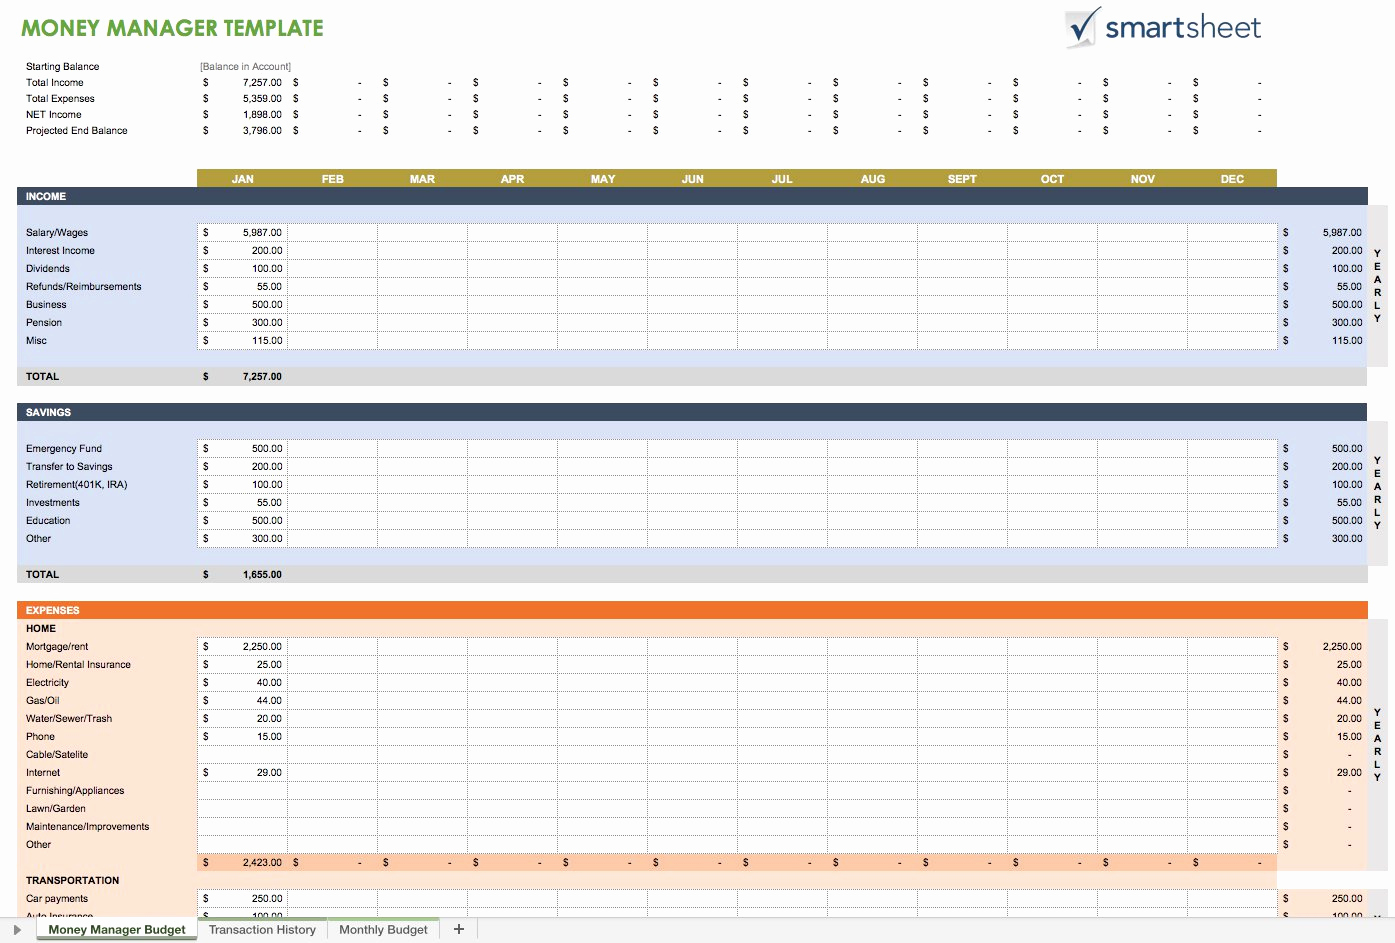 Free Expense Report Template Unique Free Expense Report Templates Smartsheet